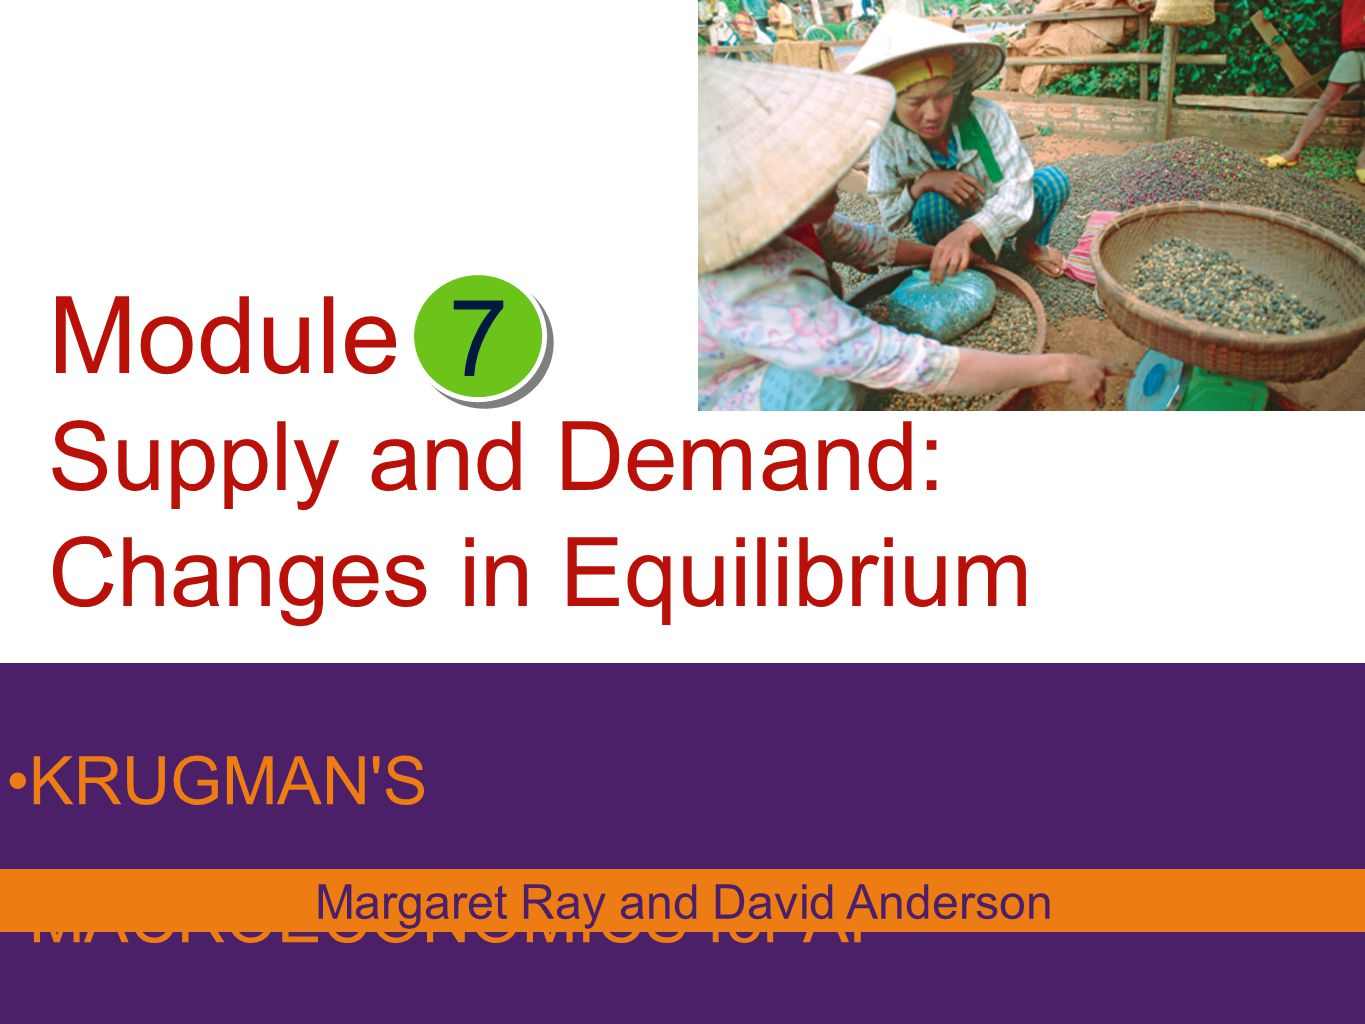 Module Supply and Demand: Changes in Equilibrium KRUGMAN'S MACROECONOMICS for AP* 7 Margaret Ray and David Anderson